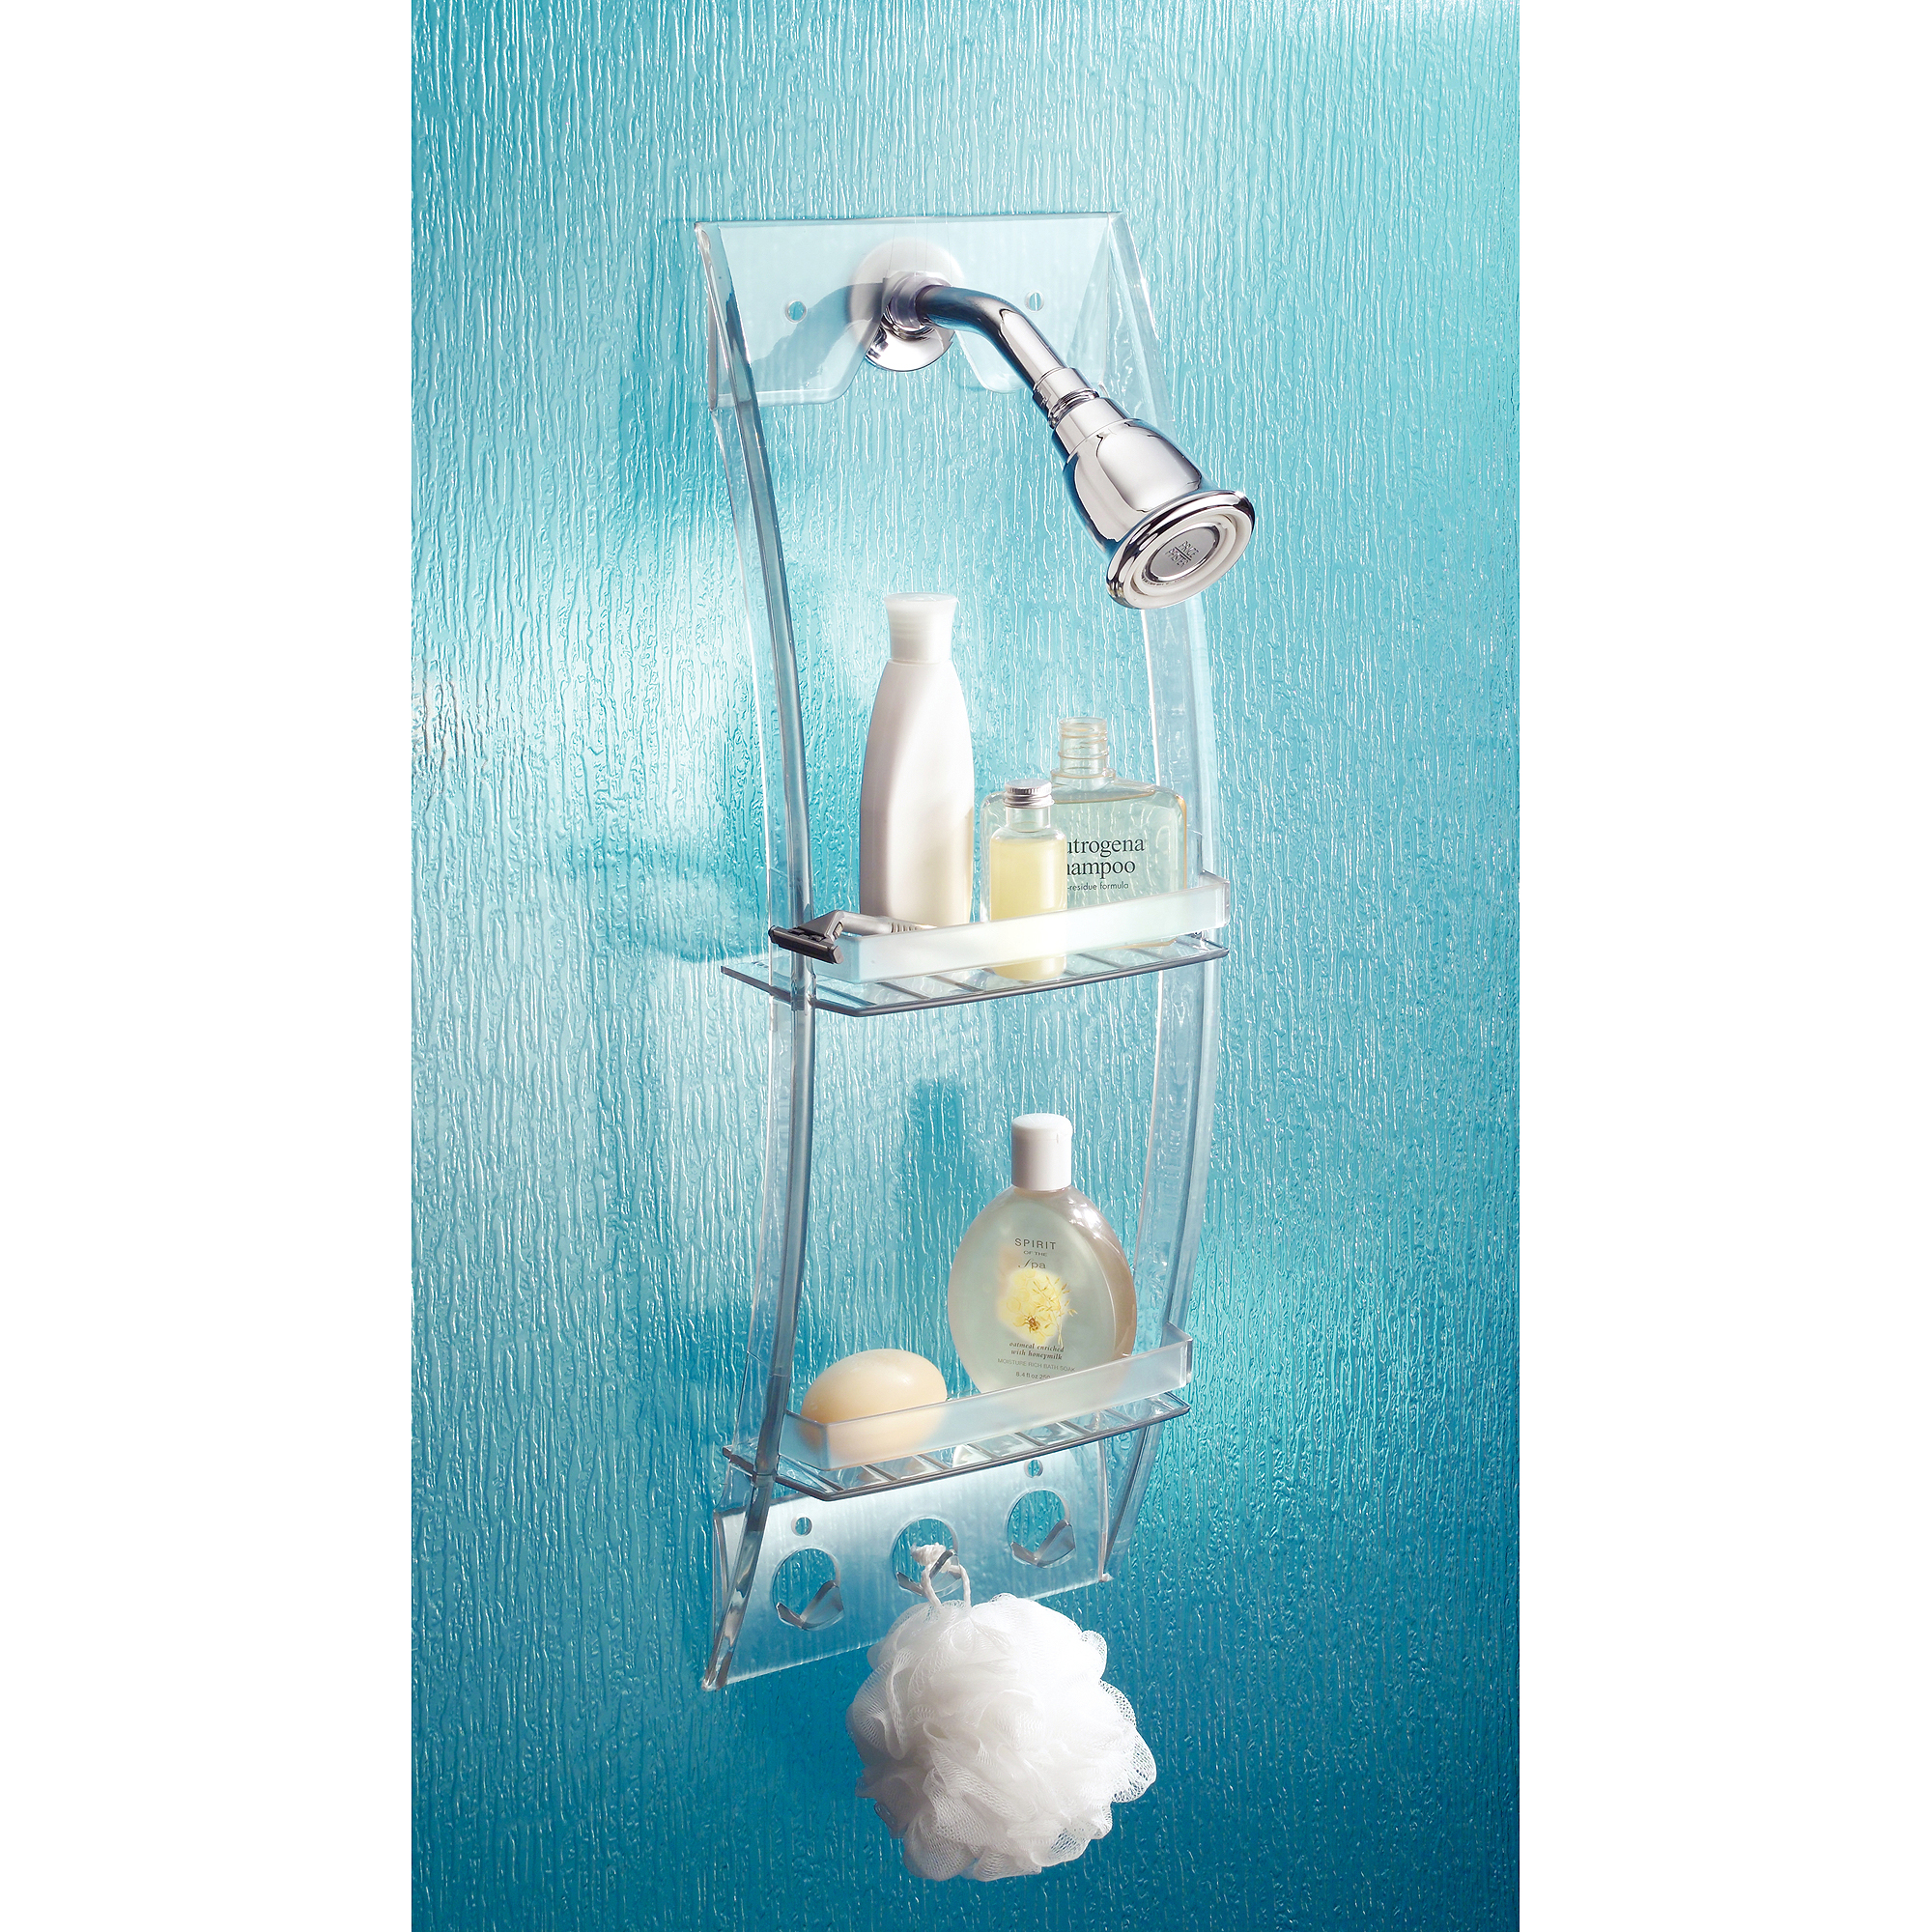 InterDesign Shower Caddy Suction - Walmart.com